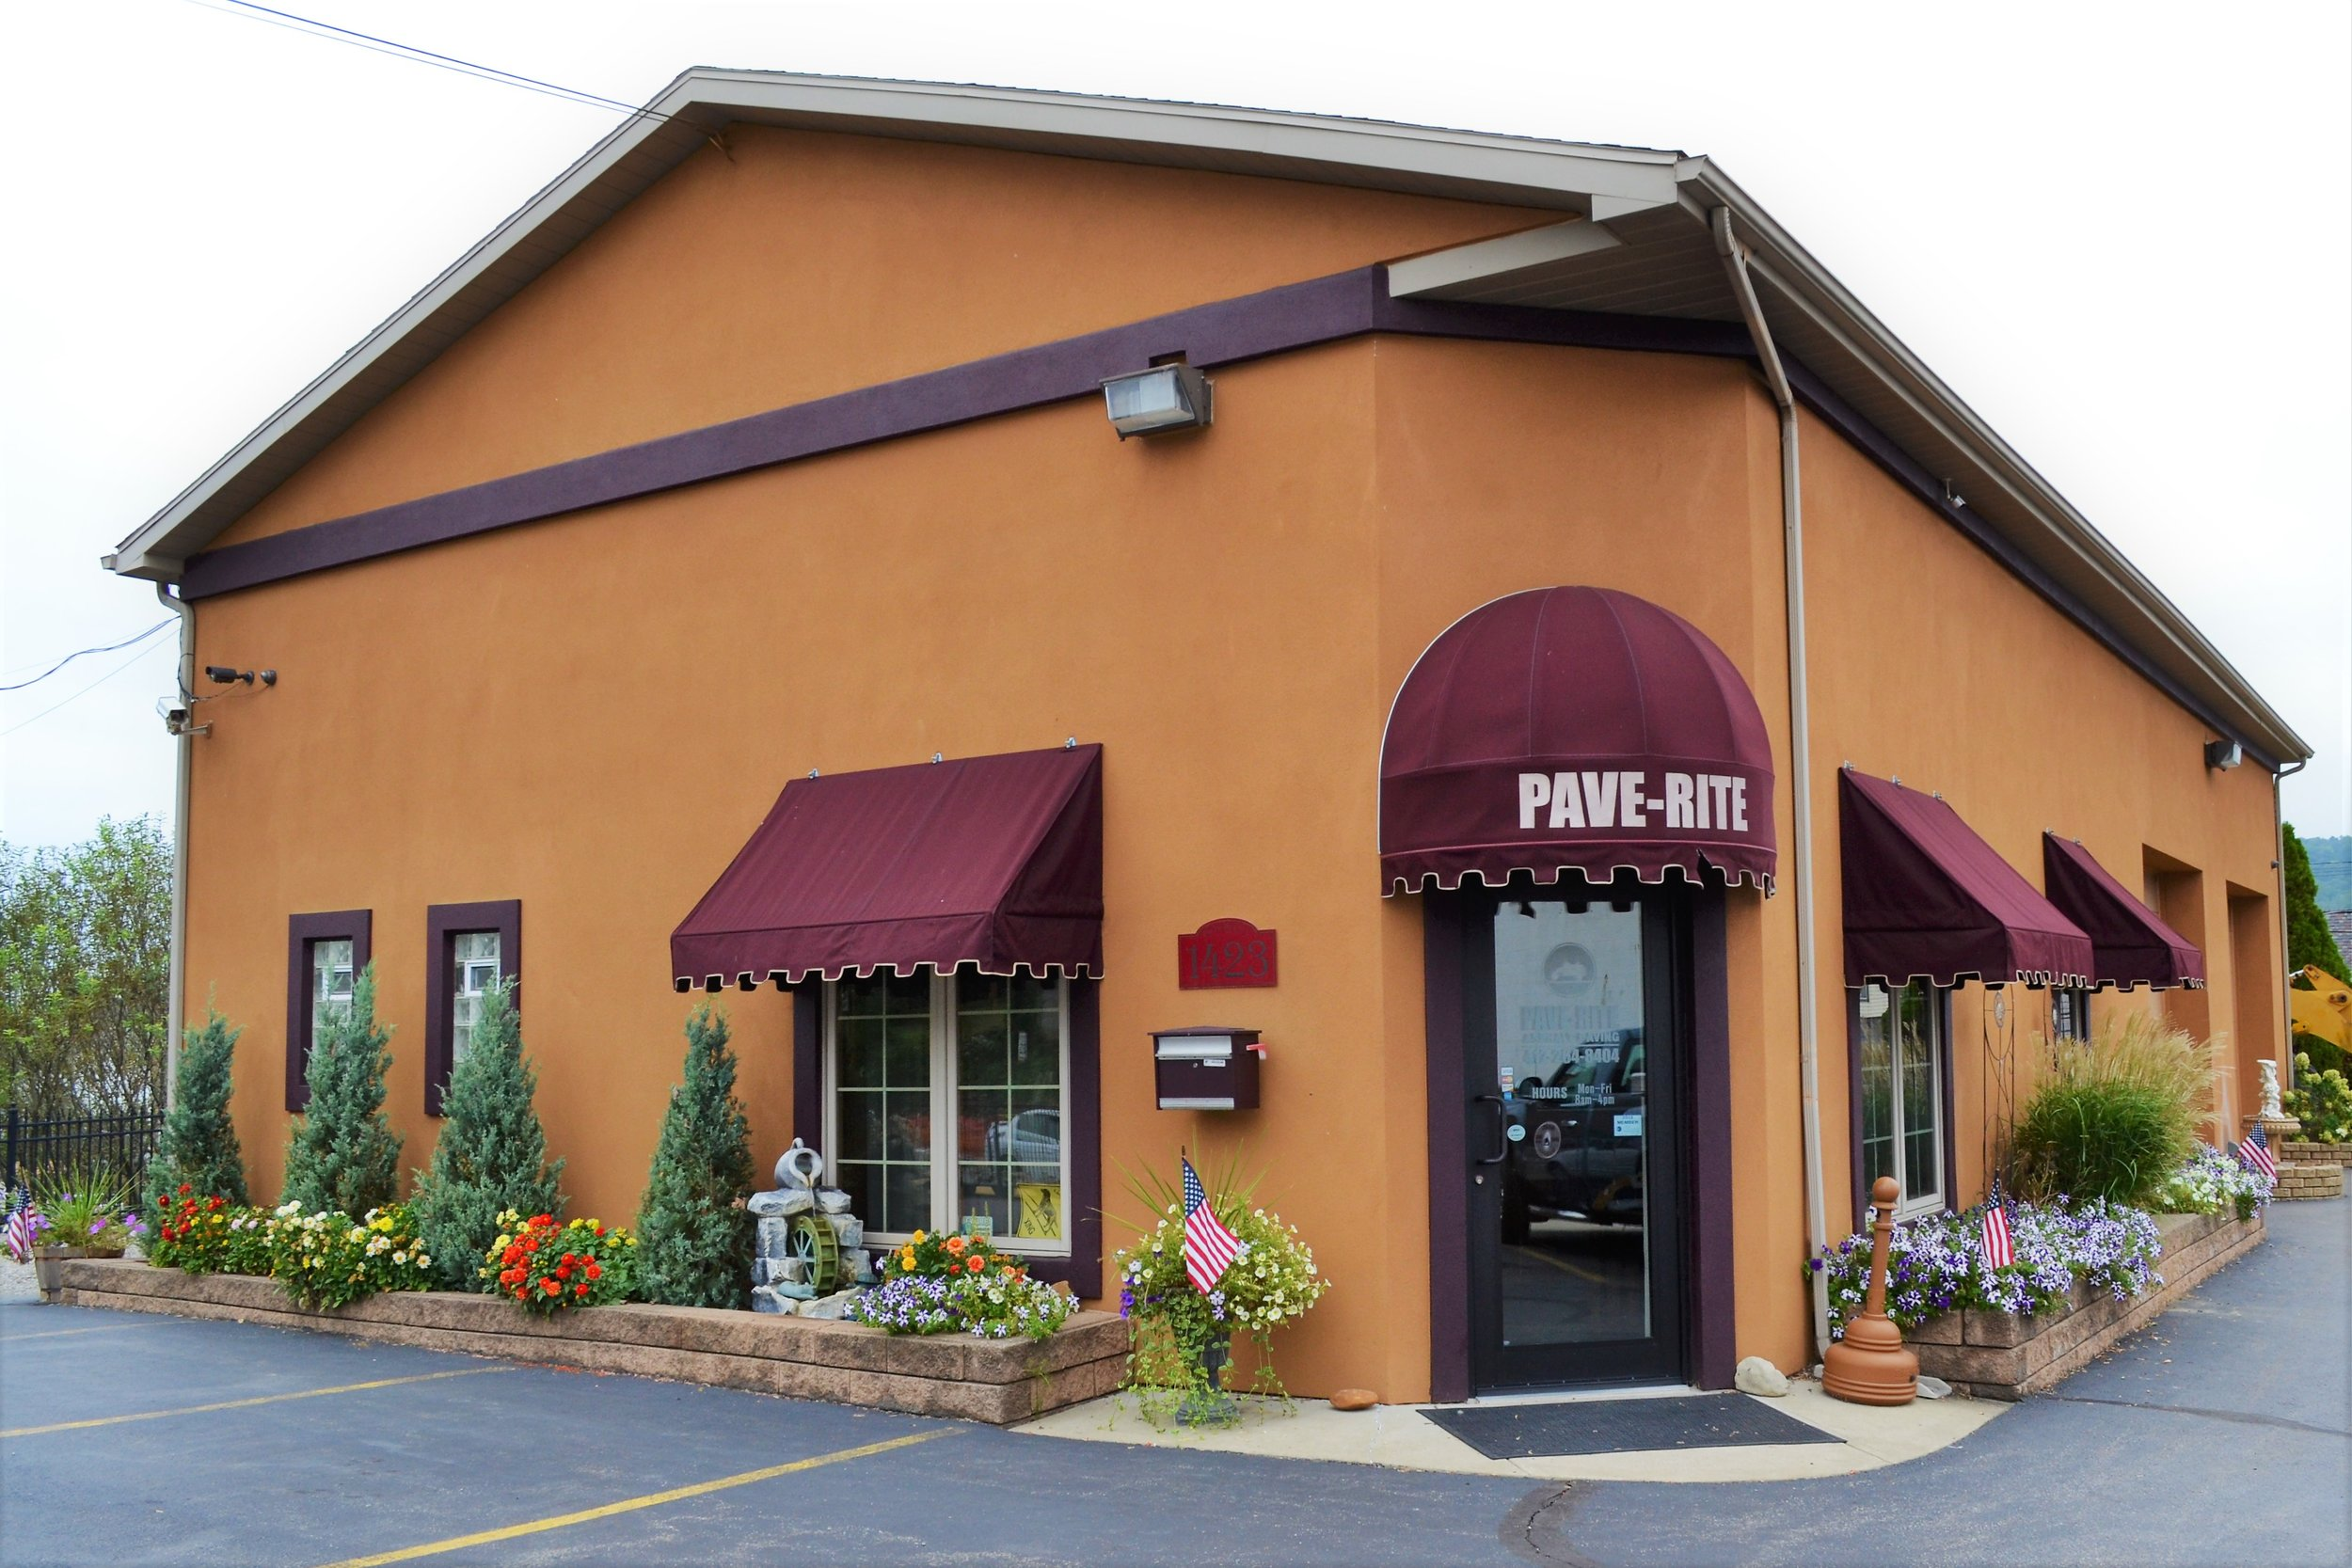 Pave-Rite - 1423 5th Ave, (412) 264-8404